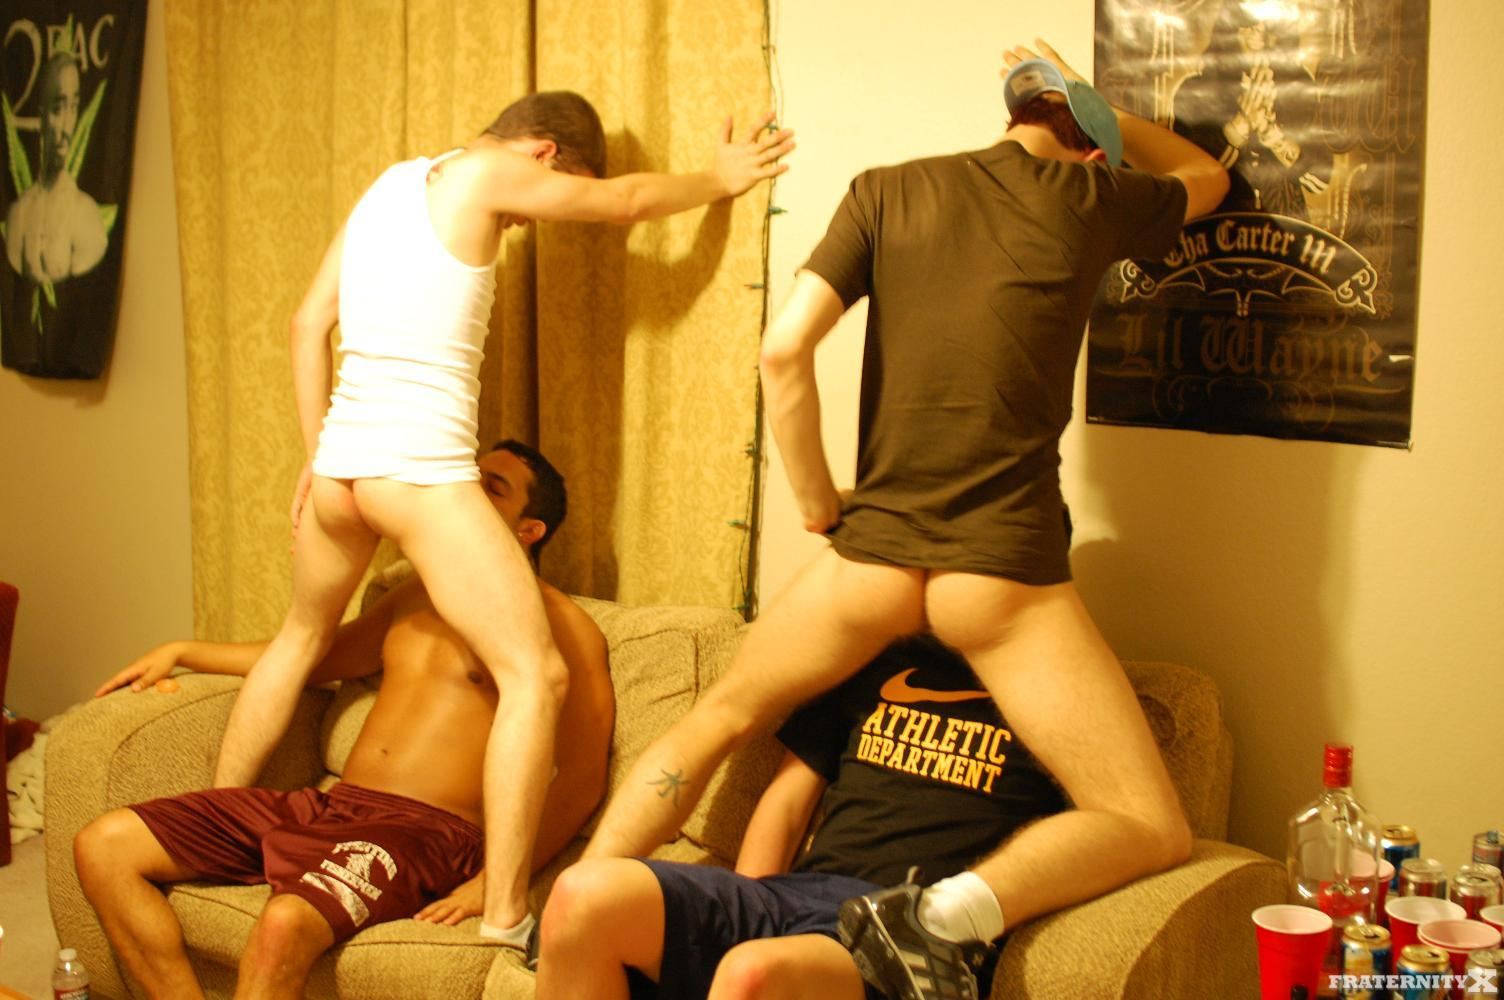 Fraternity-X-Pays-The-Rent-Straight-Amatuer-Bareback-Fucking-14 Real Amateur Straight Fraternity Boys Fucking Bareback